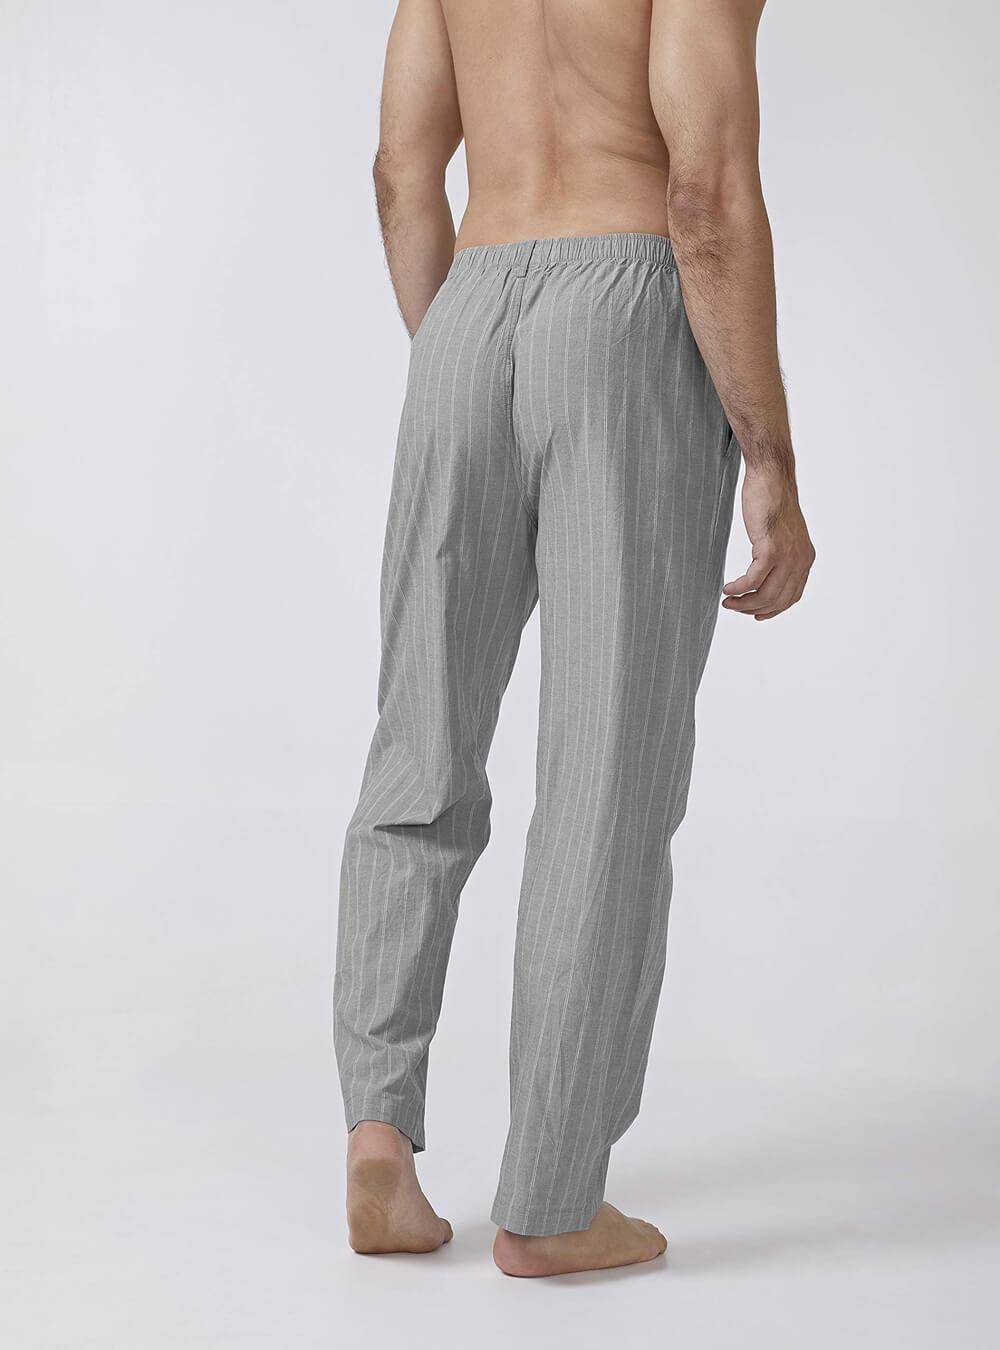 Cotton Ultra Soft Pajama Pants